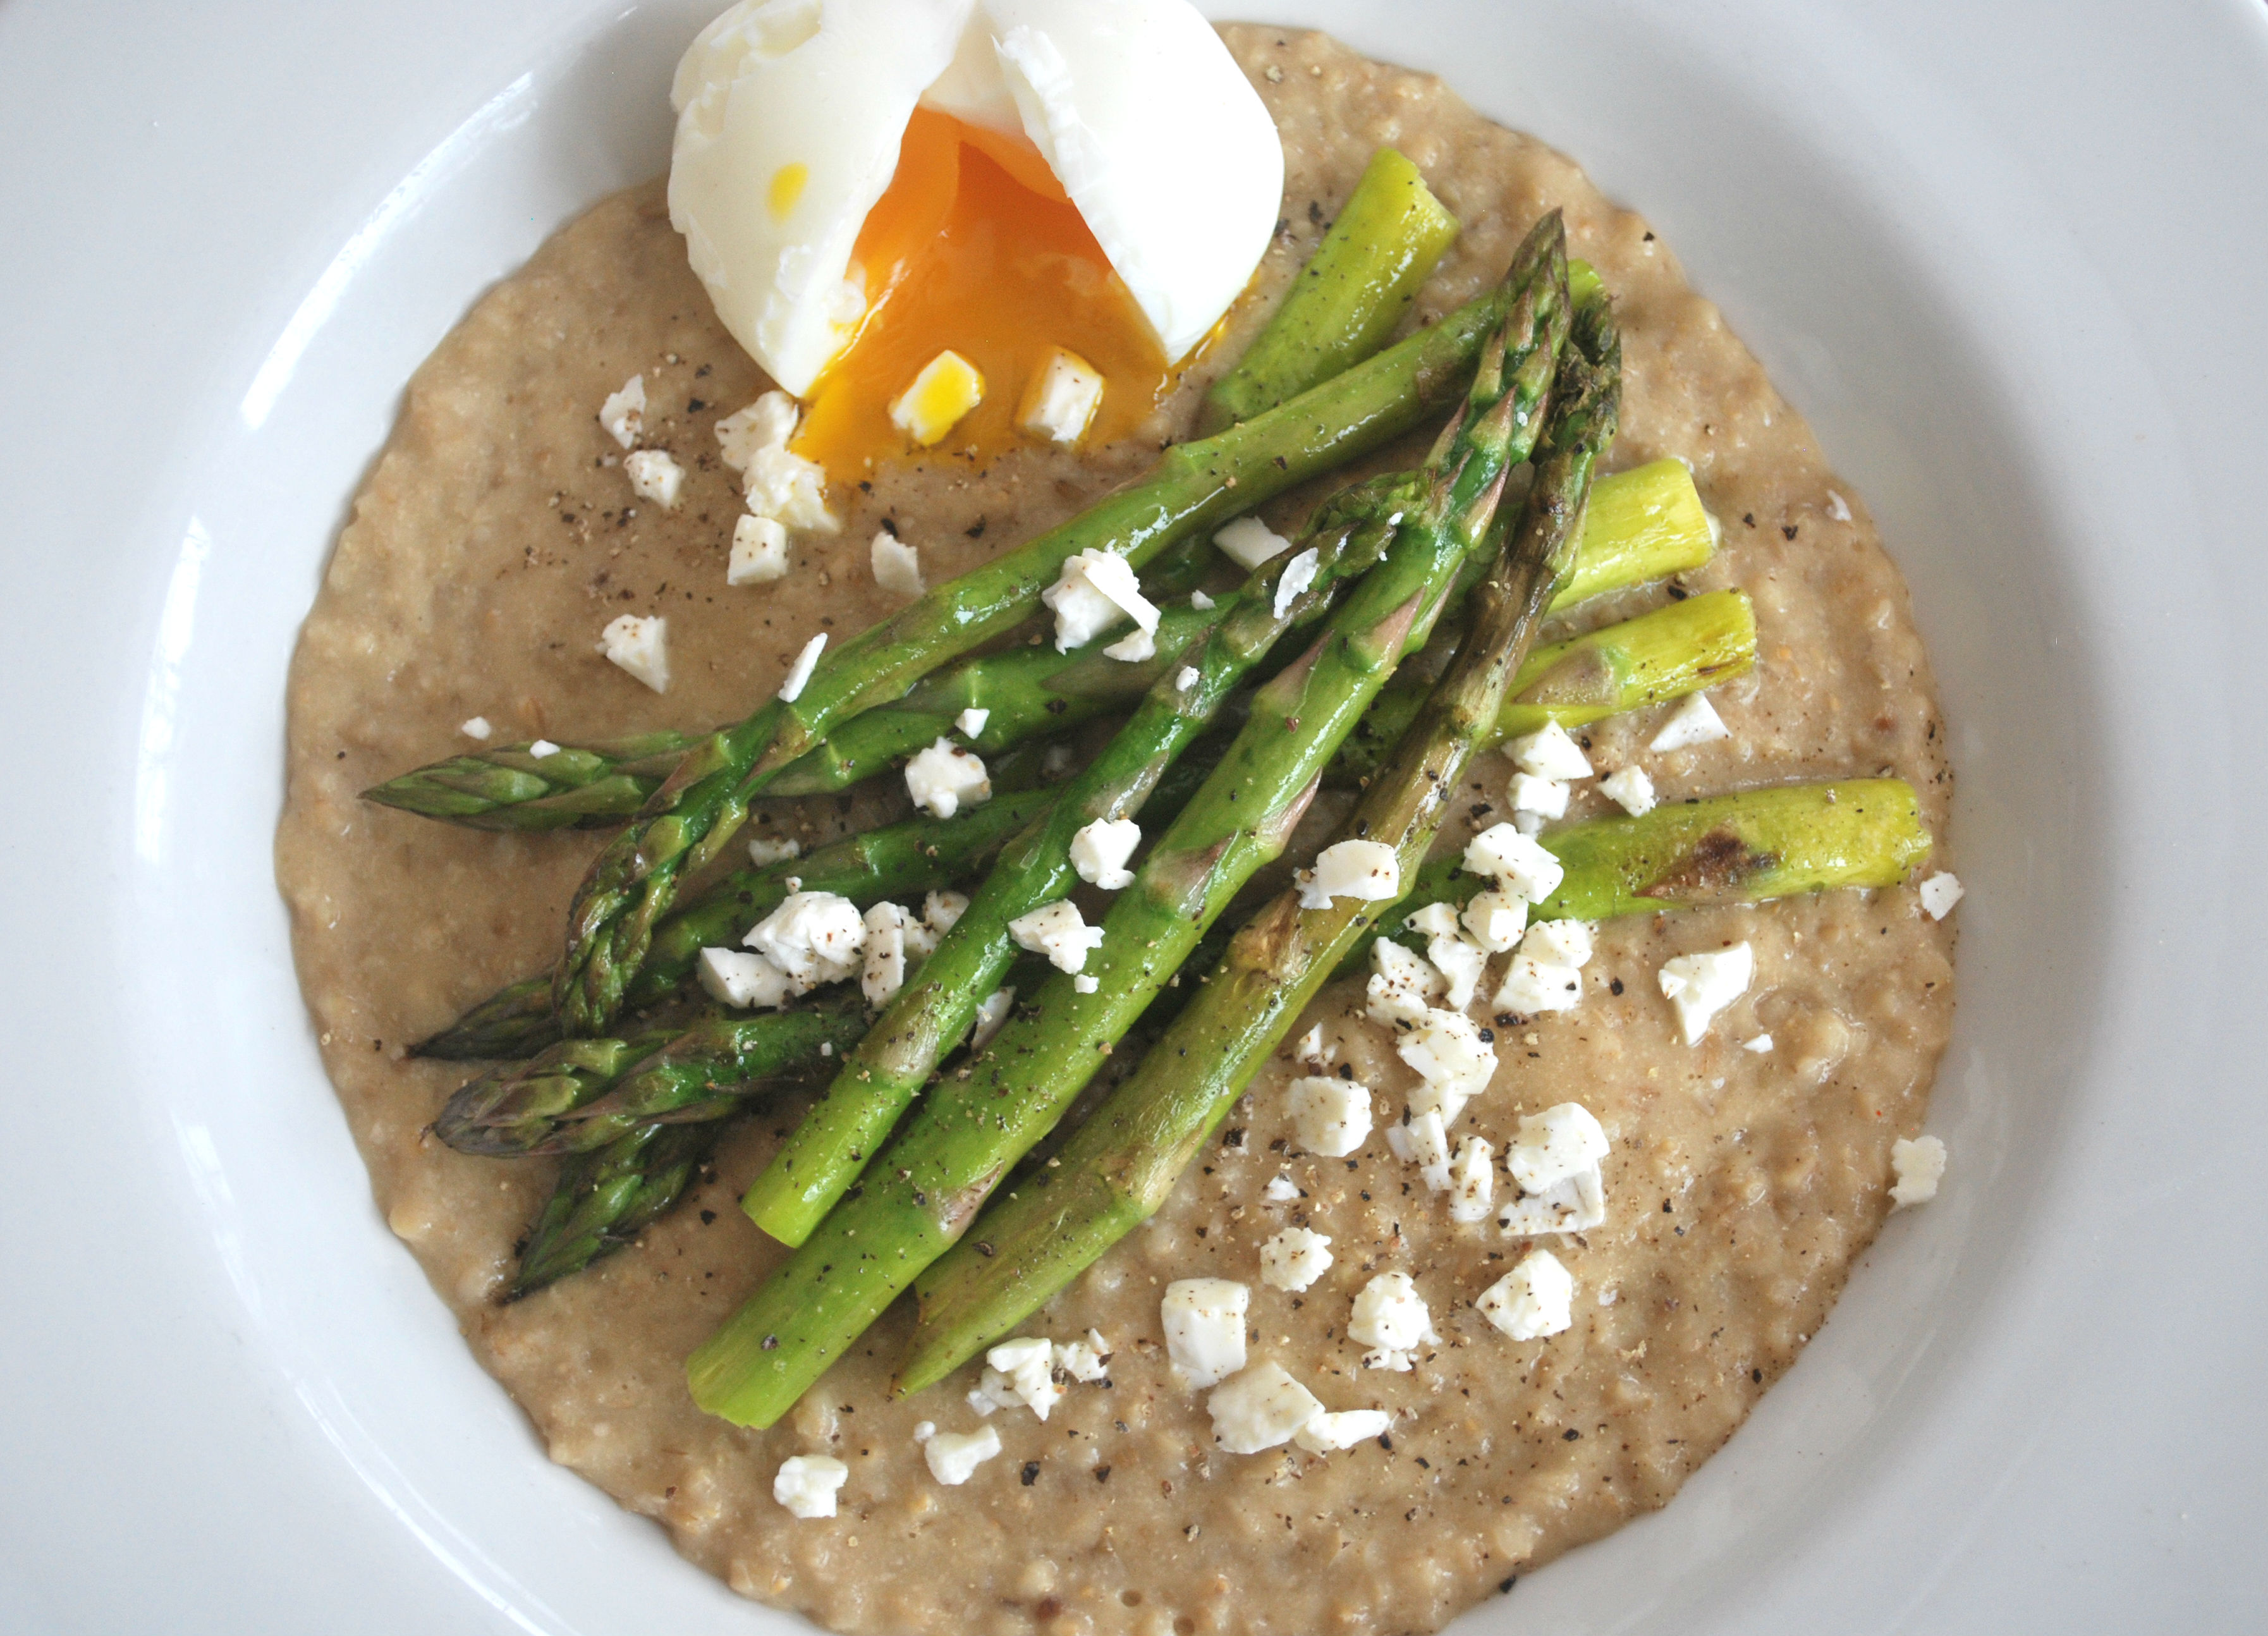 Soft Boiled Egg and Asparagus on Oats